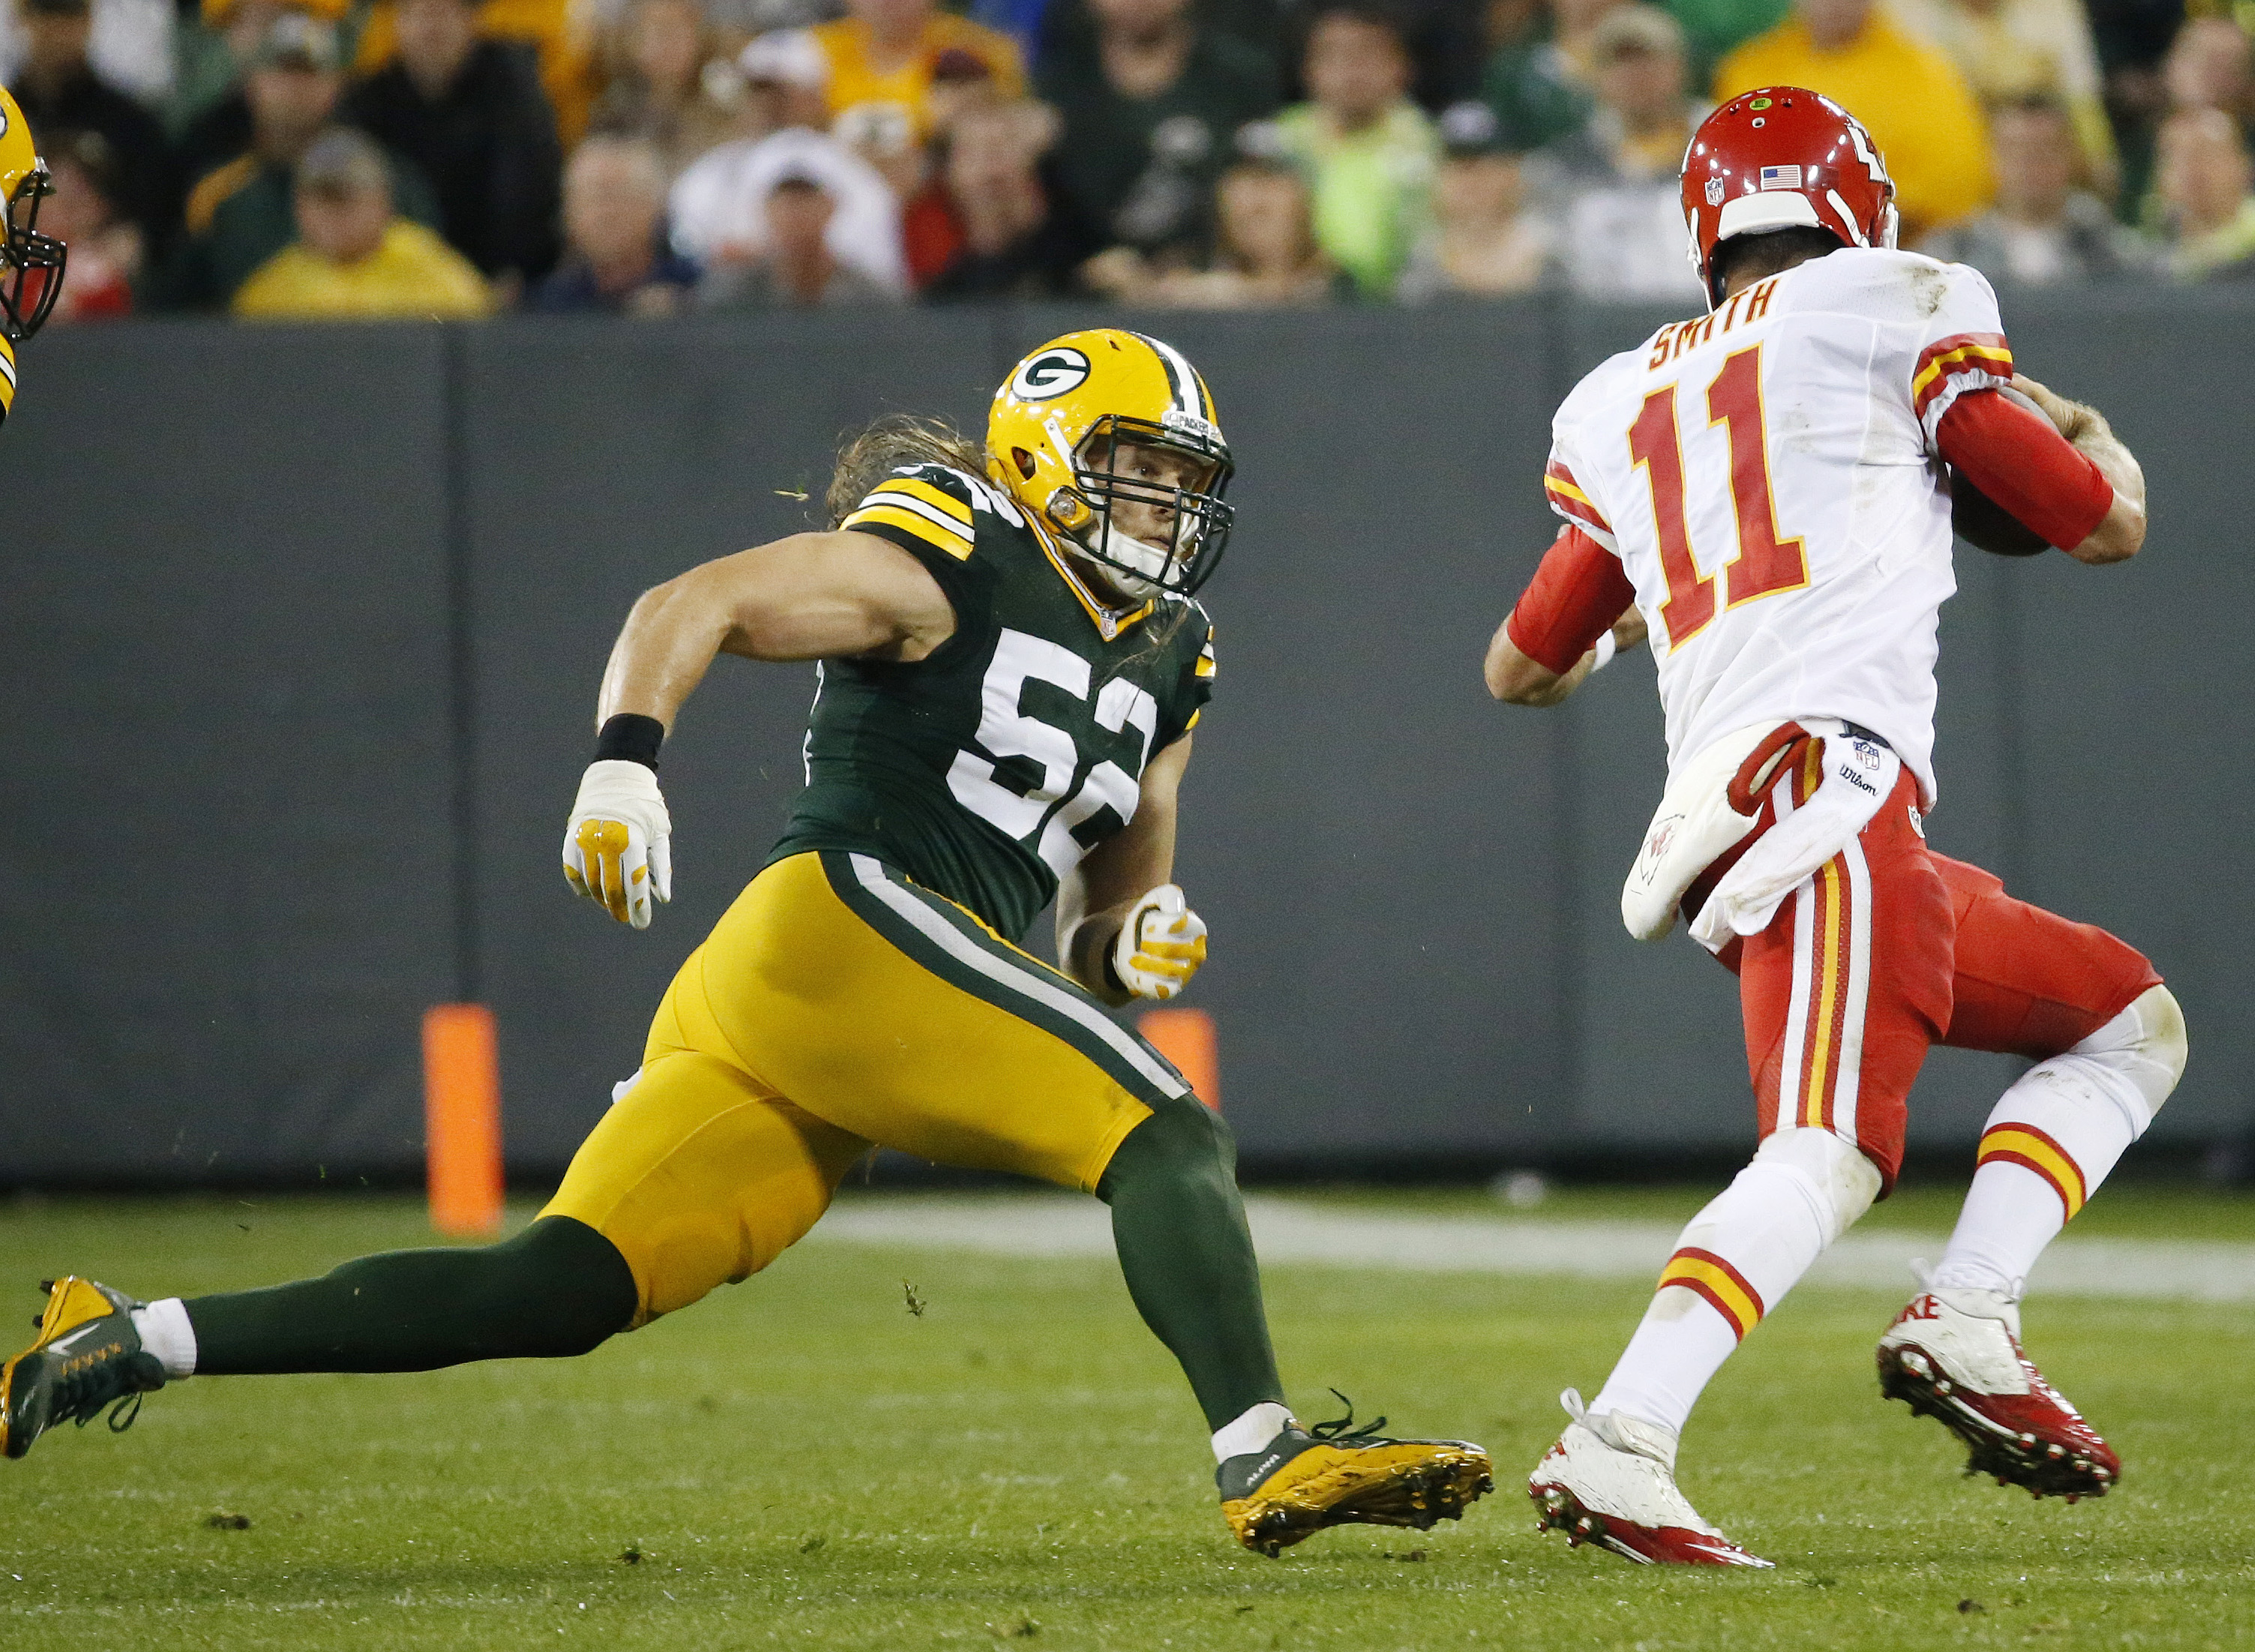 Green Bay Packers' Clay Matthews tries to catch Kansas City Chiefs' Alex Smith (11) during the second half of an NFL football game Monday, Sept. 28, 2015, in Green Bay, Wis. (AP Photo/Mike Roemer)